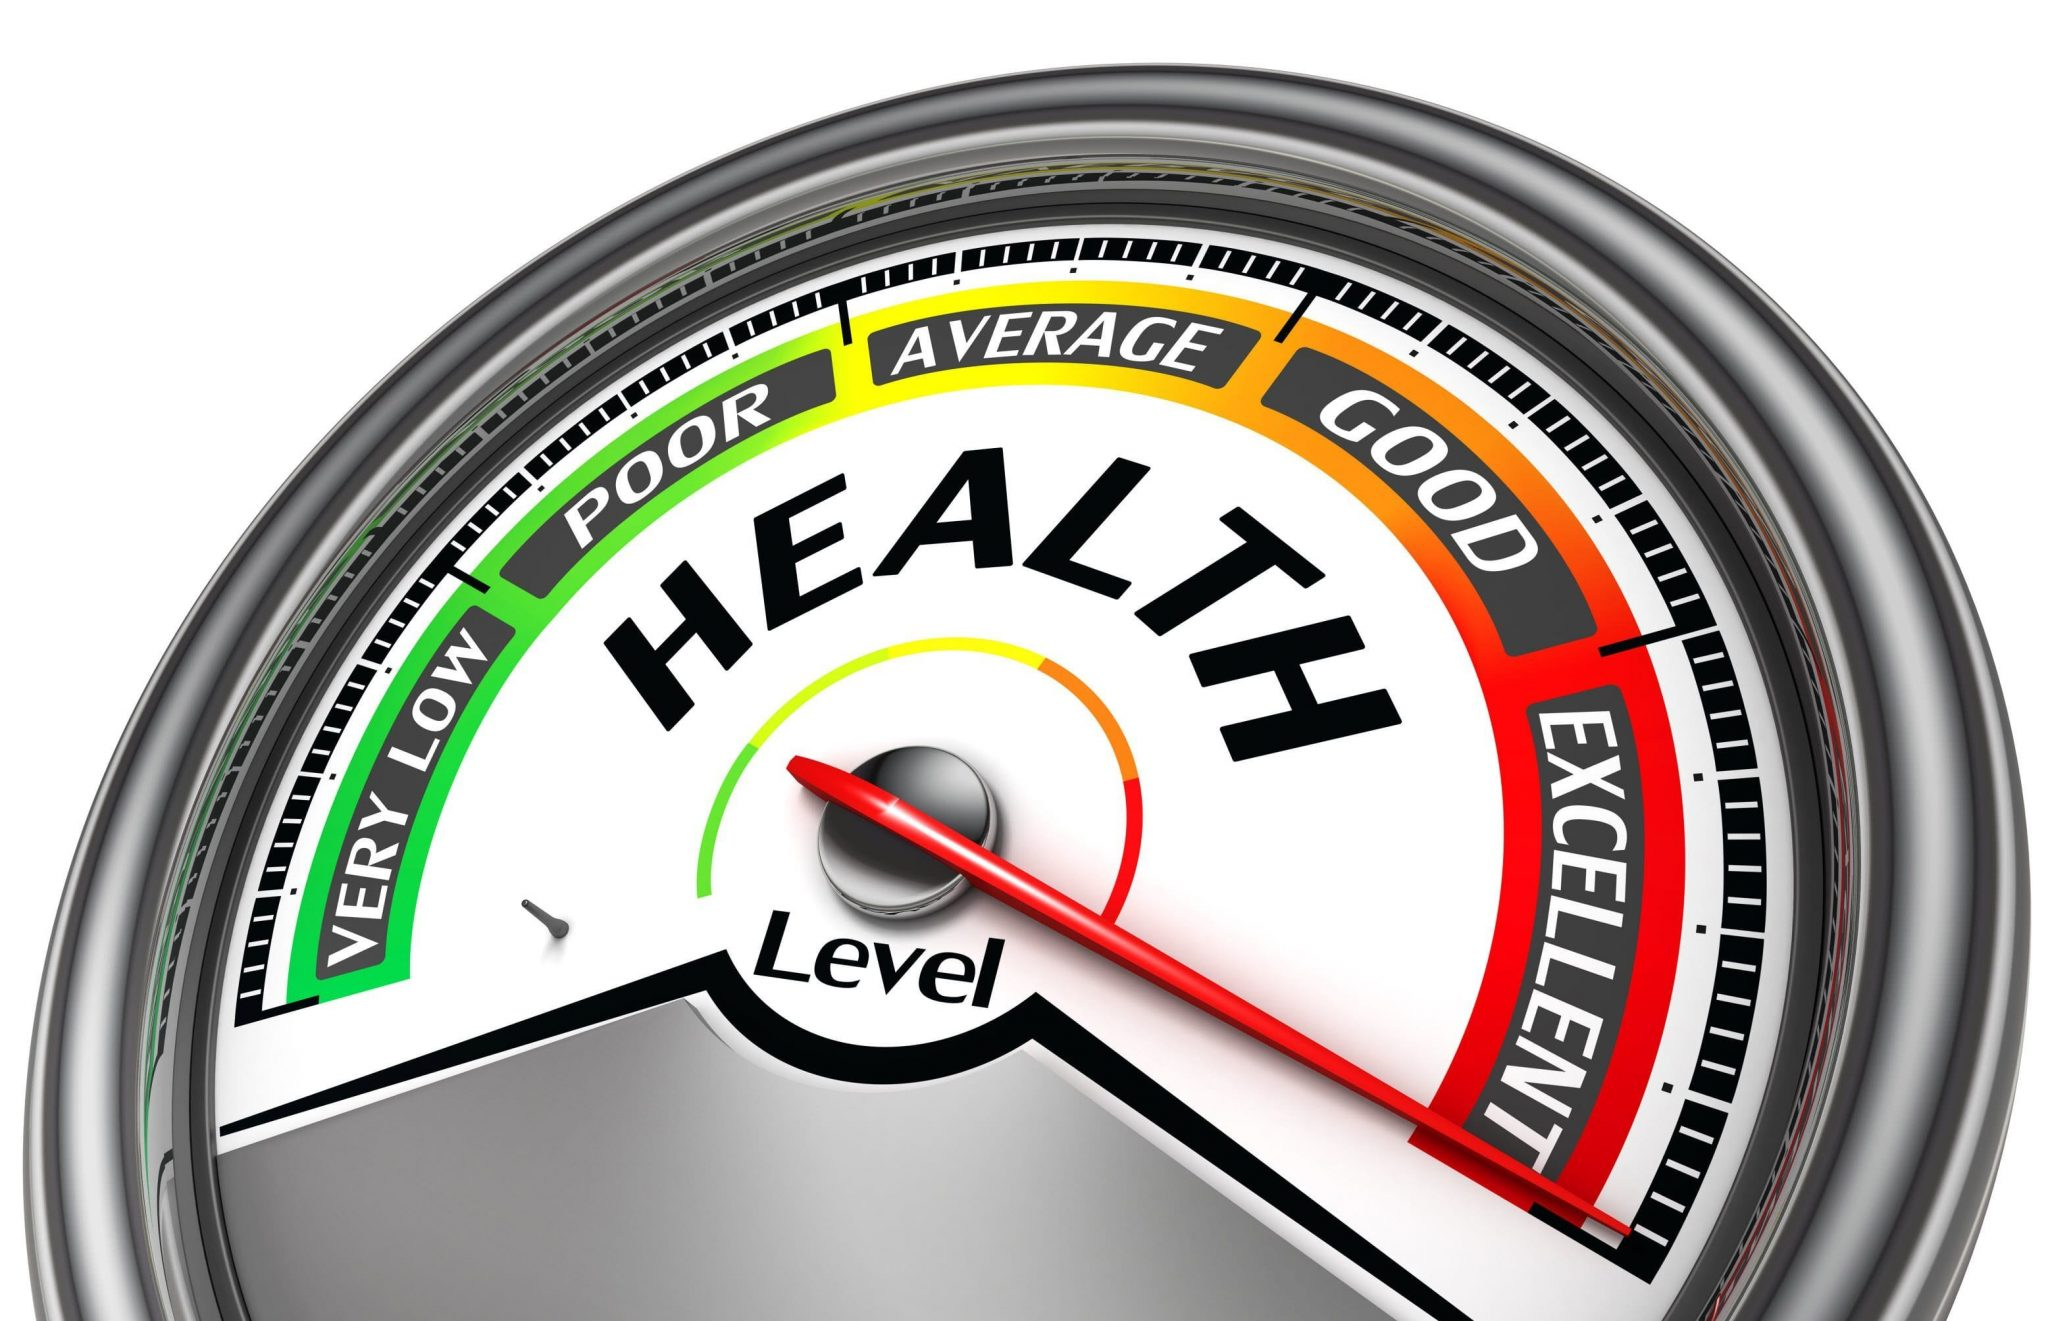 health risk assessment online review assessment forms microsoft online clip art free thank you microsoft online clip art free thank you